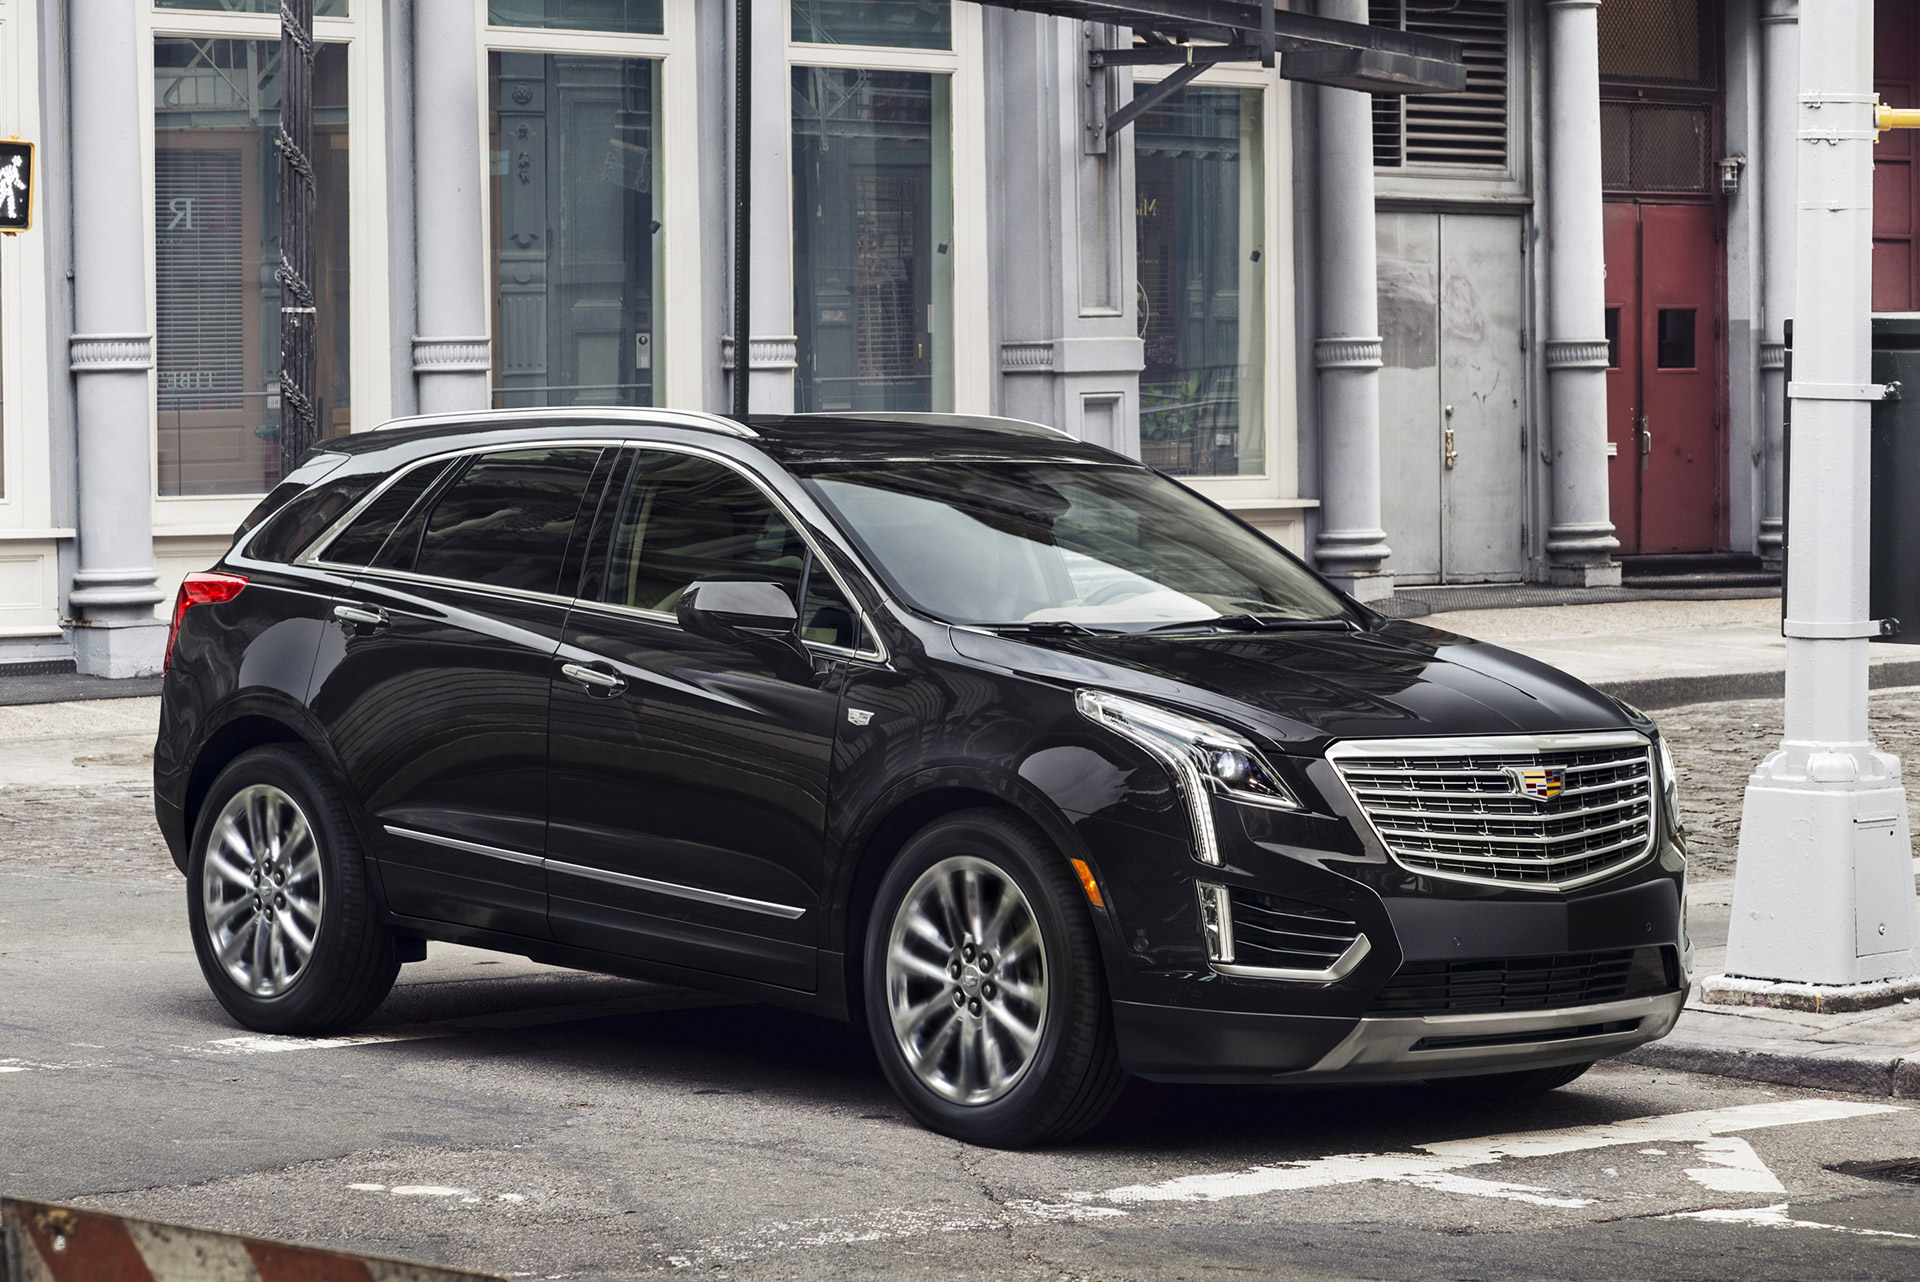 suvs australia suv and best preview price cadillac availability